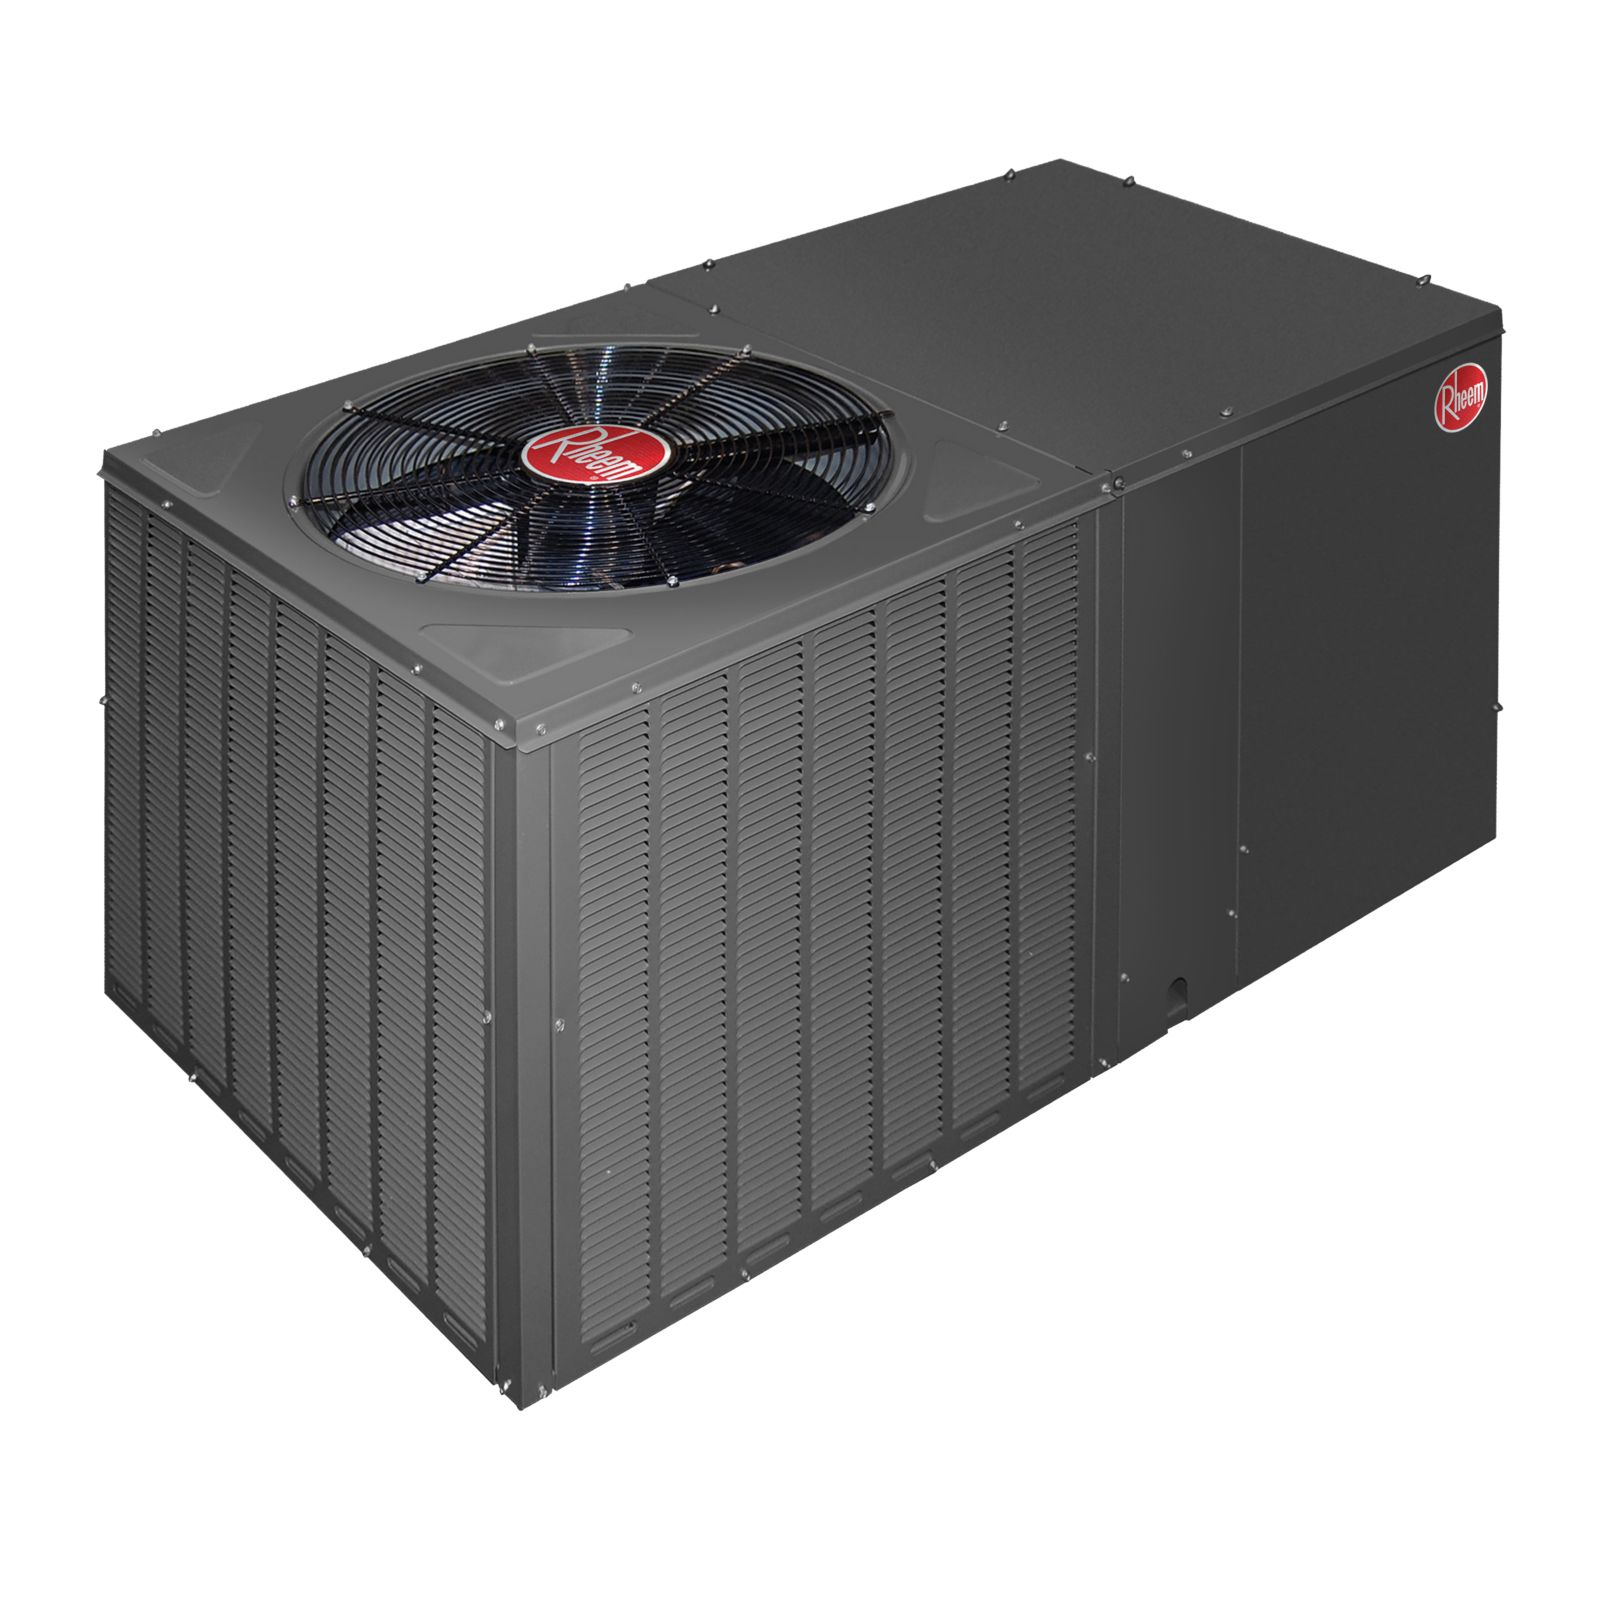 Rheem RQRM-A024JK000AUA - Classic 2 Ton 15/16 SEER, R-410A, Packaged Heat Pump With Horizontal Discharge, 208-230V, 1 Phase